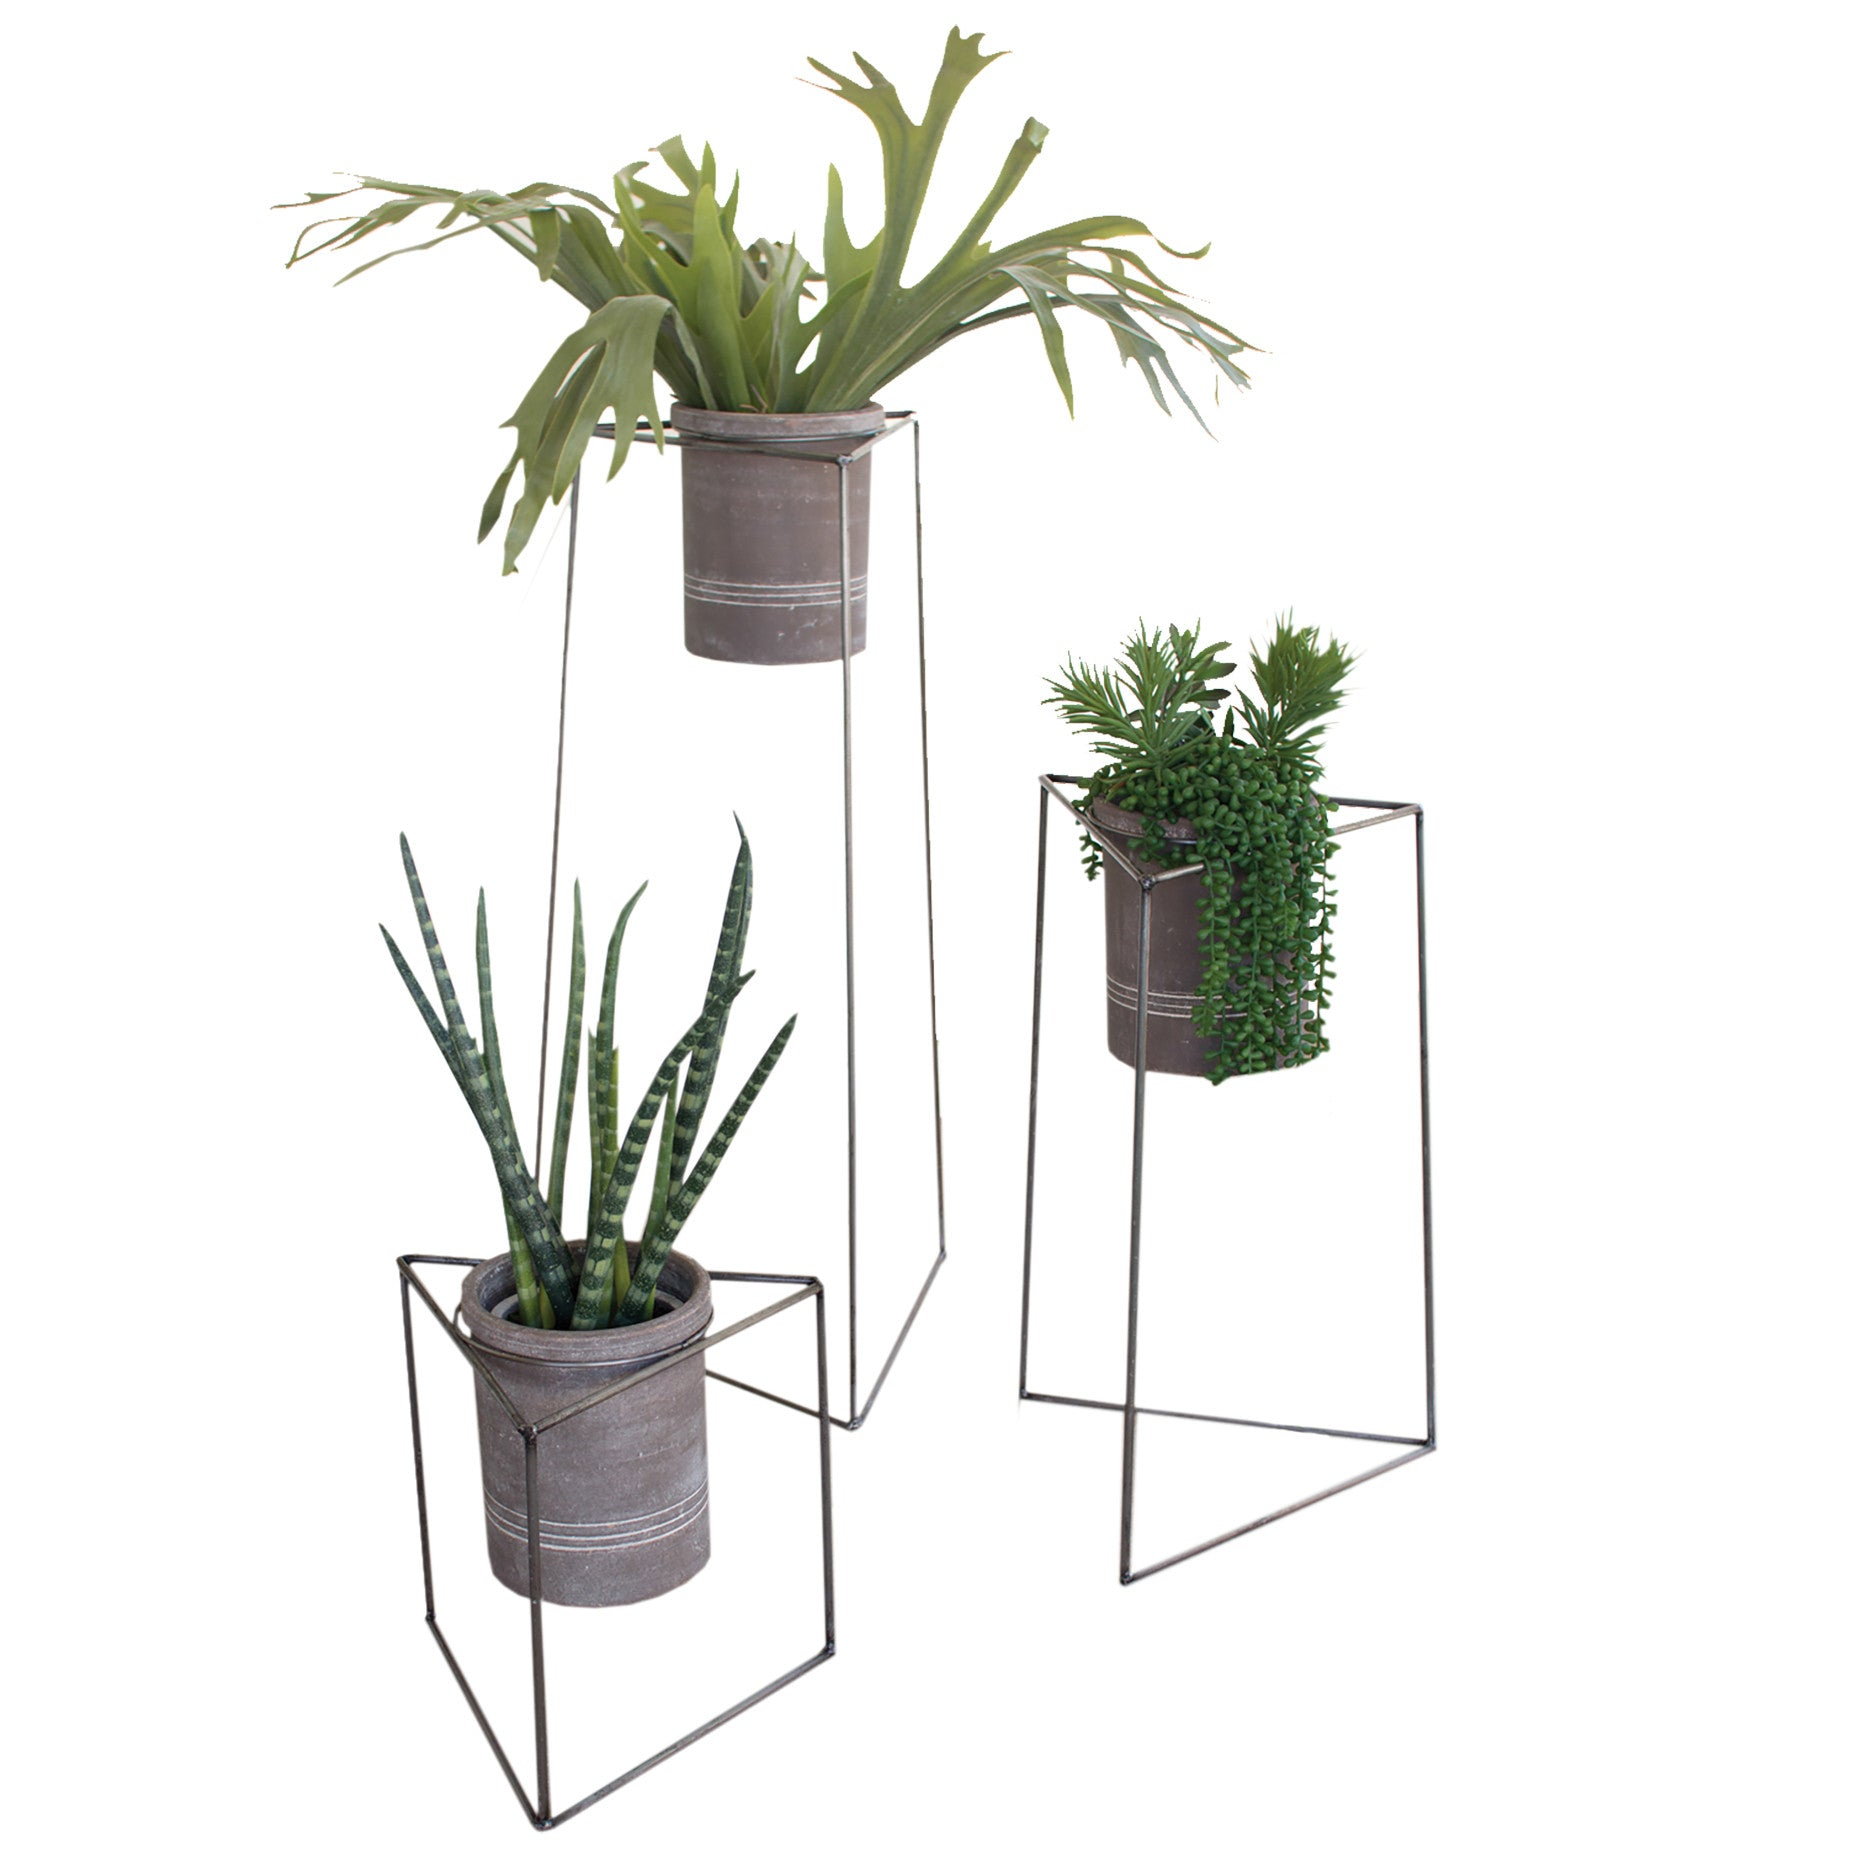 set of  industrial modern triangle planter stands with gray clay pots. modern planters  woodwaves